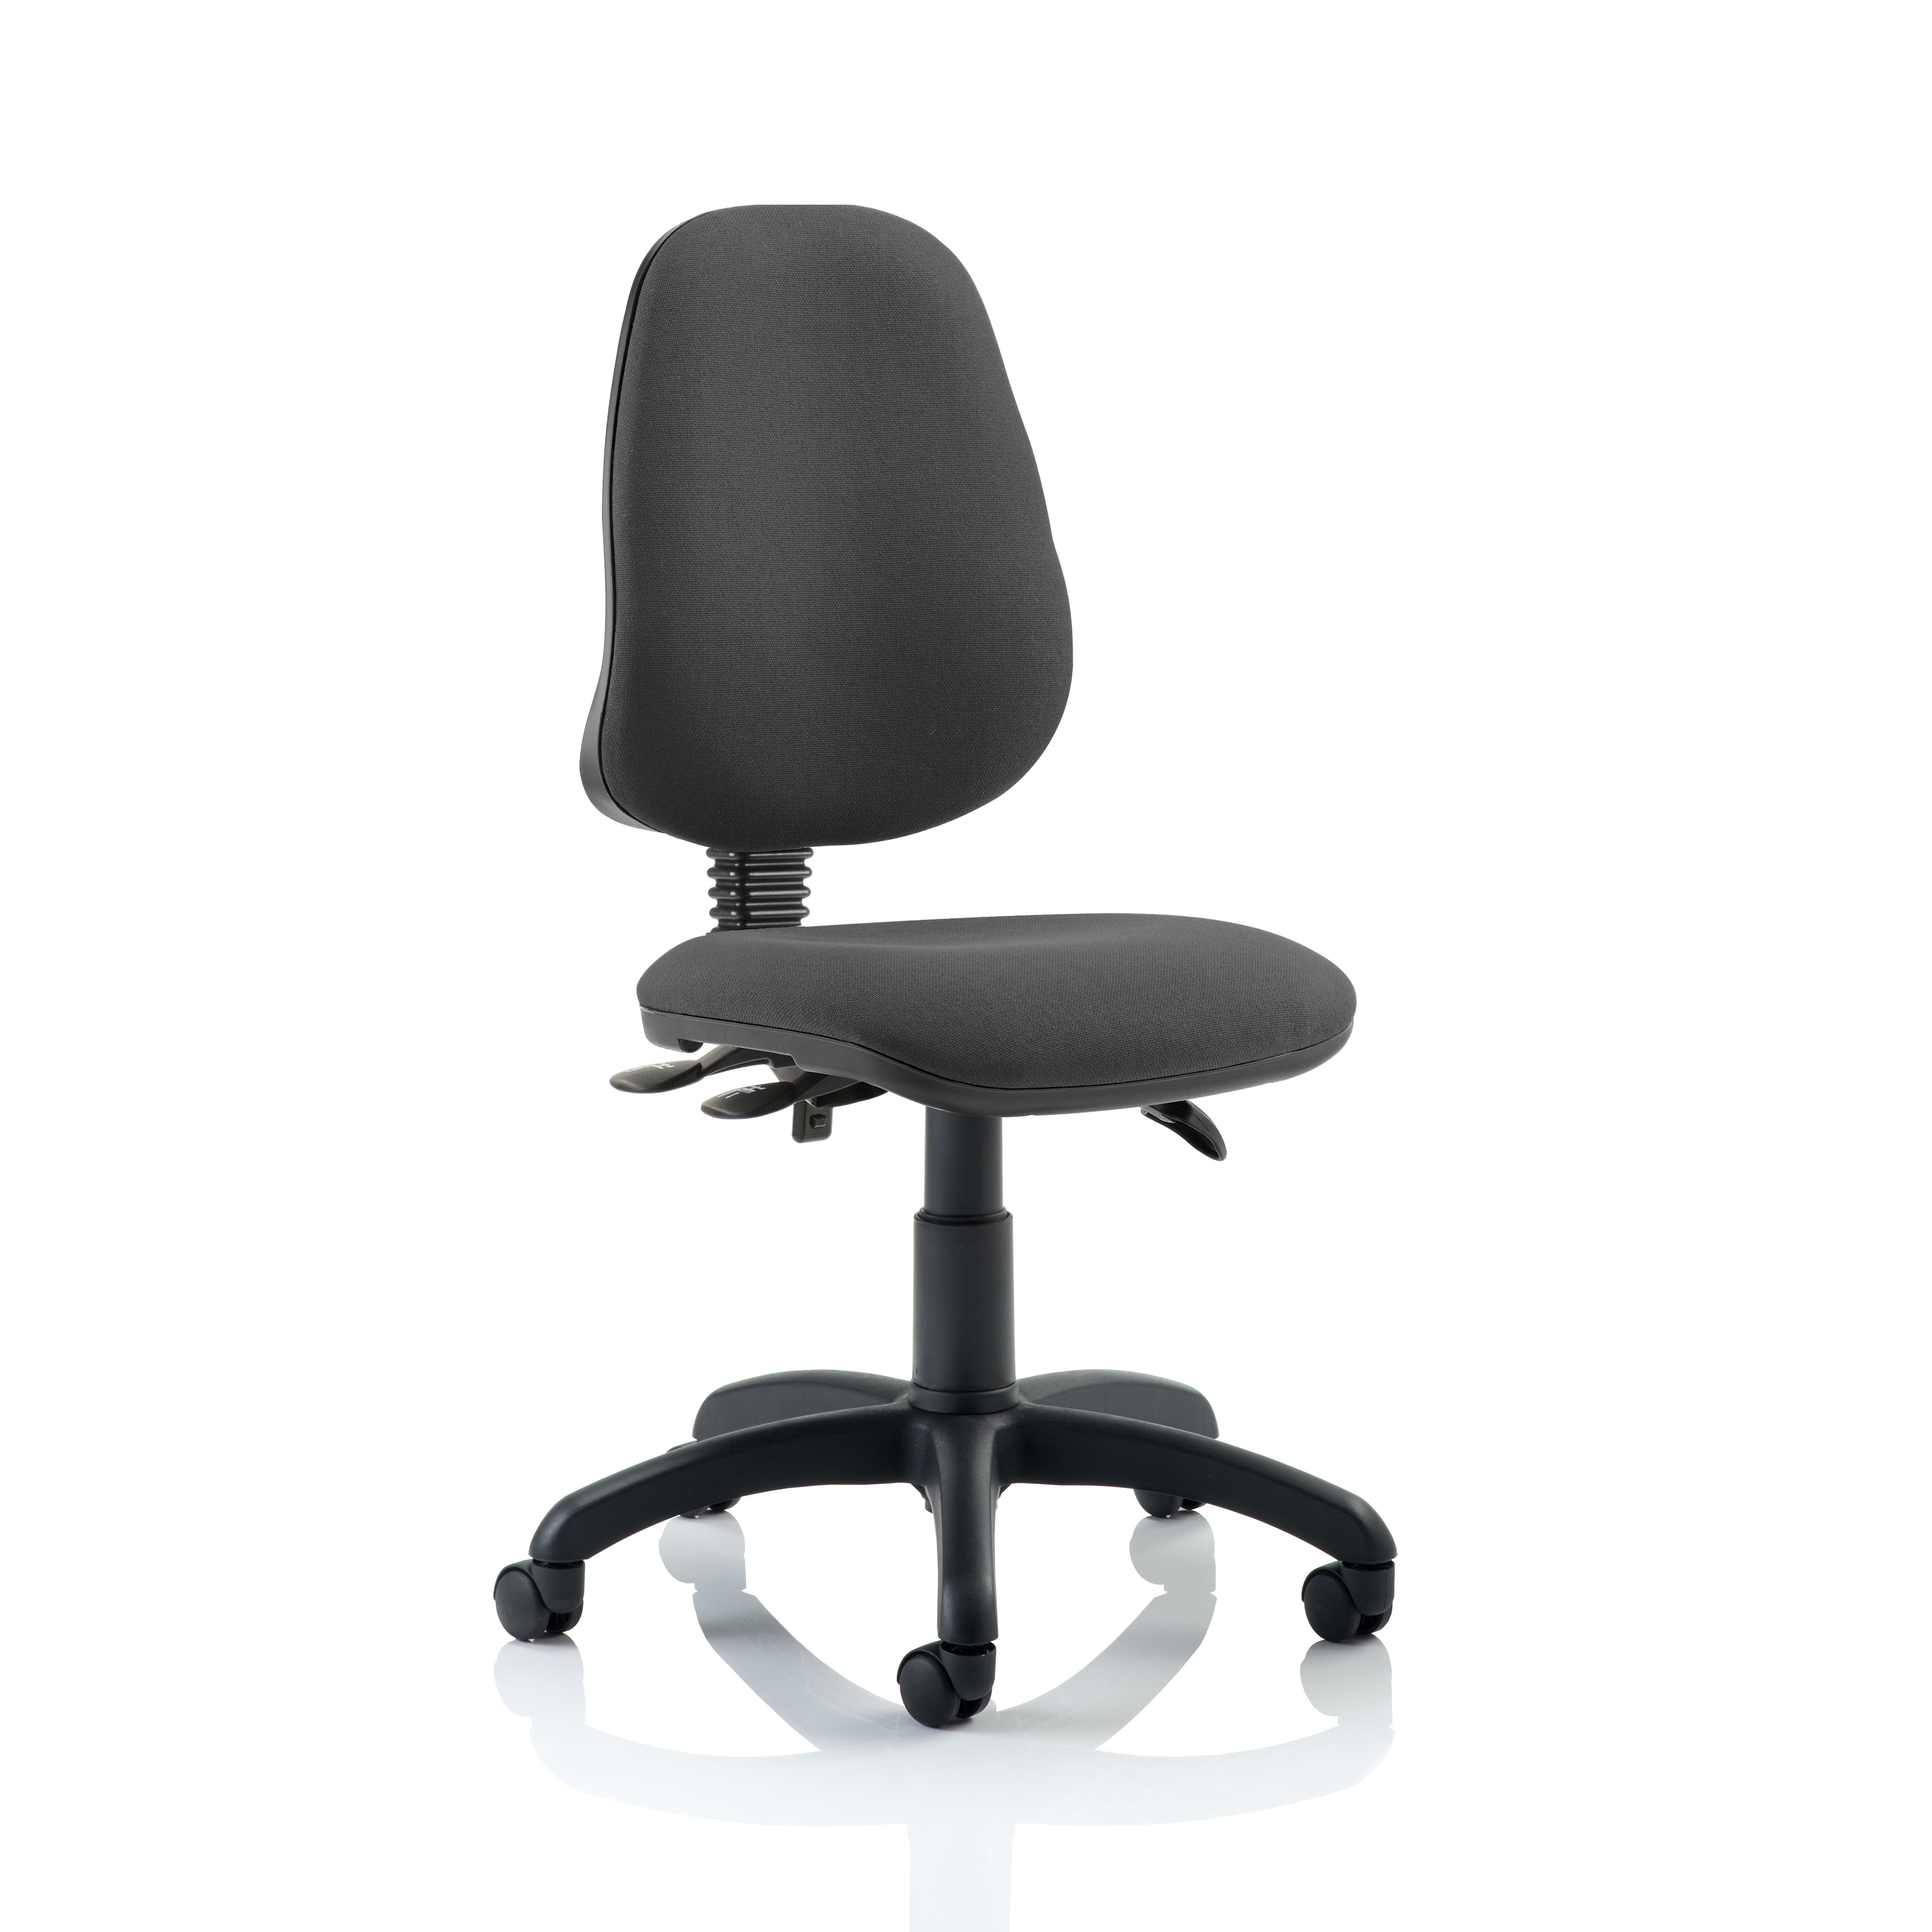 Trexus 3 Lever High Back Asynchronous Chair Charcoal 480x450x490-590mm Ref OP000033